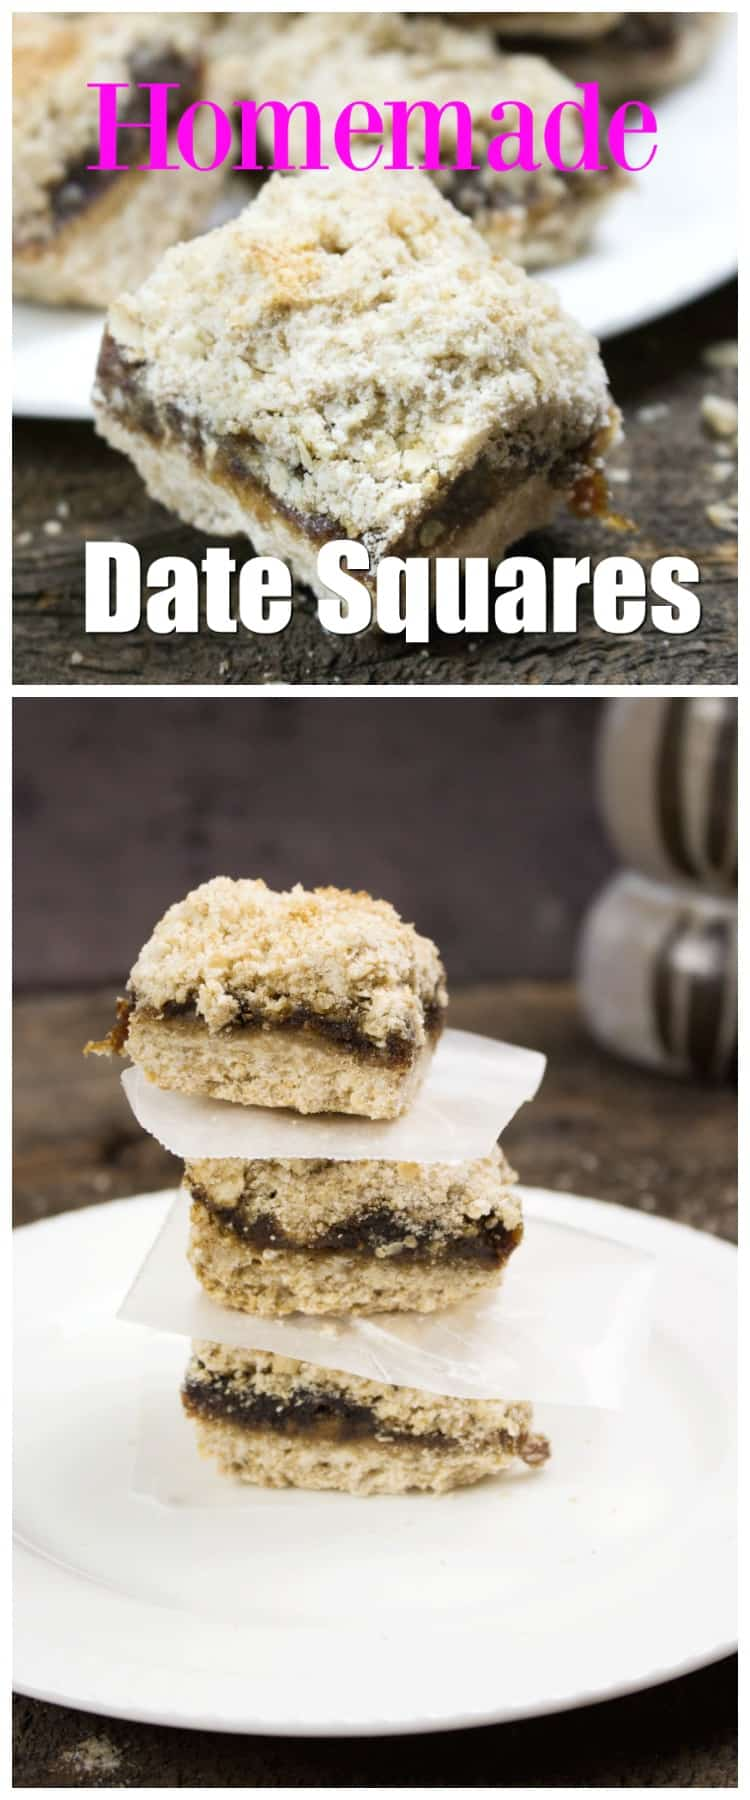 This homemade date squares recipe is packed with the sweetness of dates combined with a crunchy and crumbly topping and is a long standing family favorite. Homemade Date Squares fresh from the oven and a big glass of milk! That's my idea of a great afternoon snack. This recipe is so easy and freezes well too!